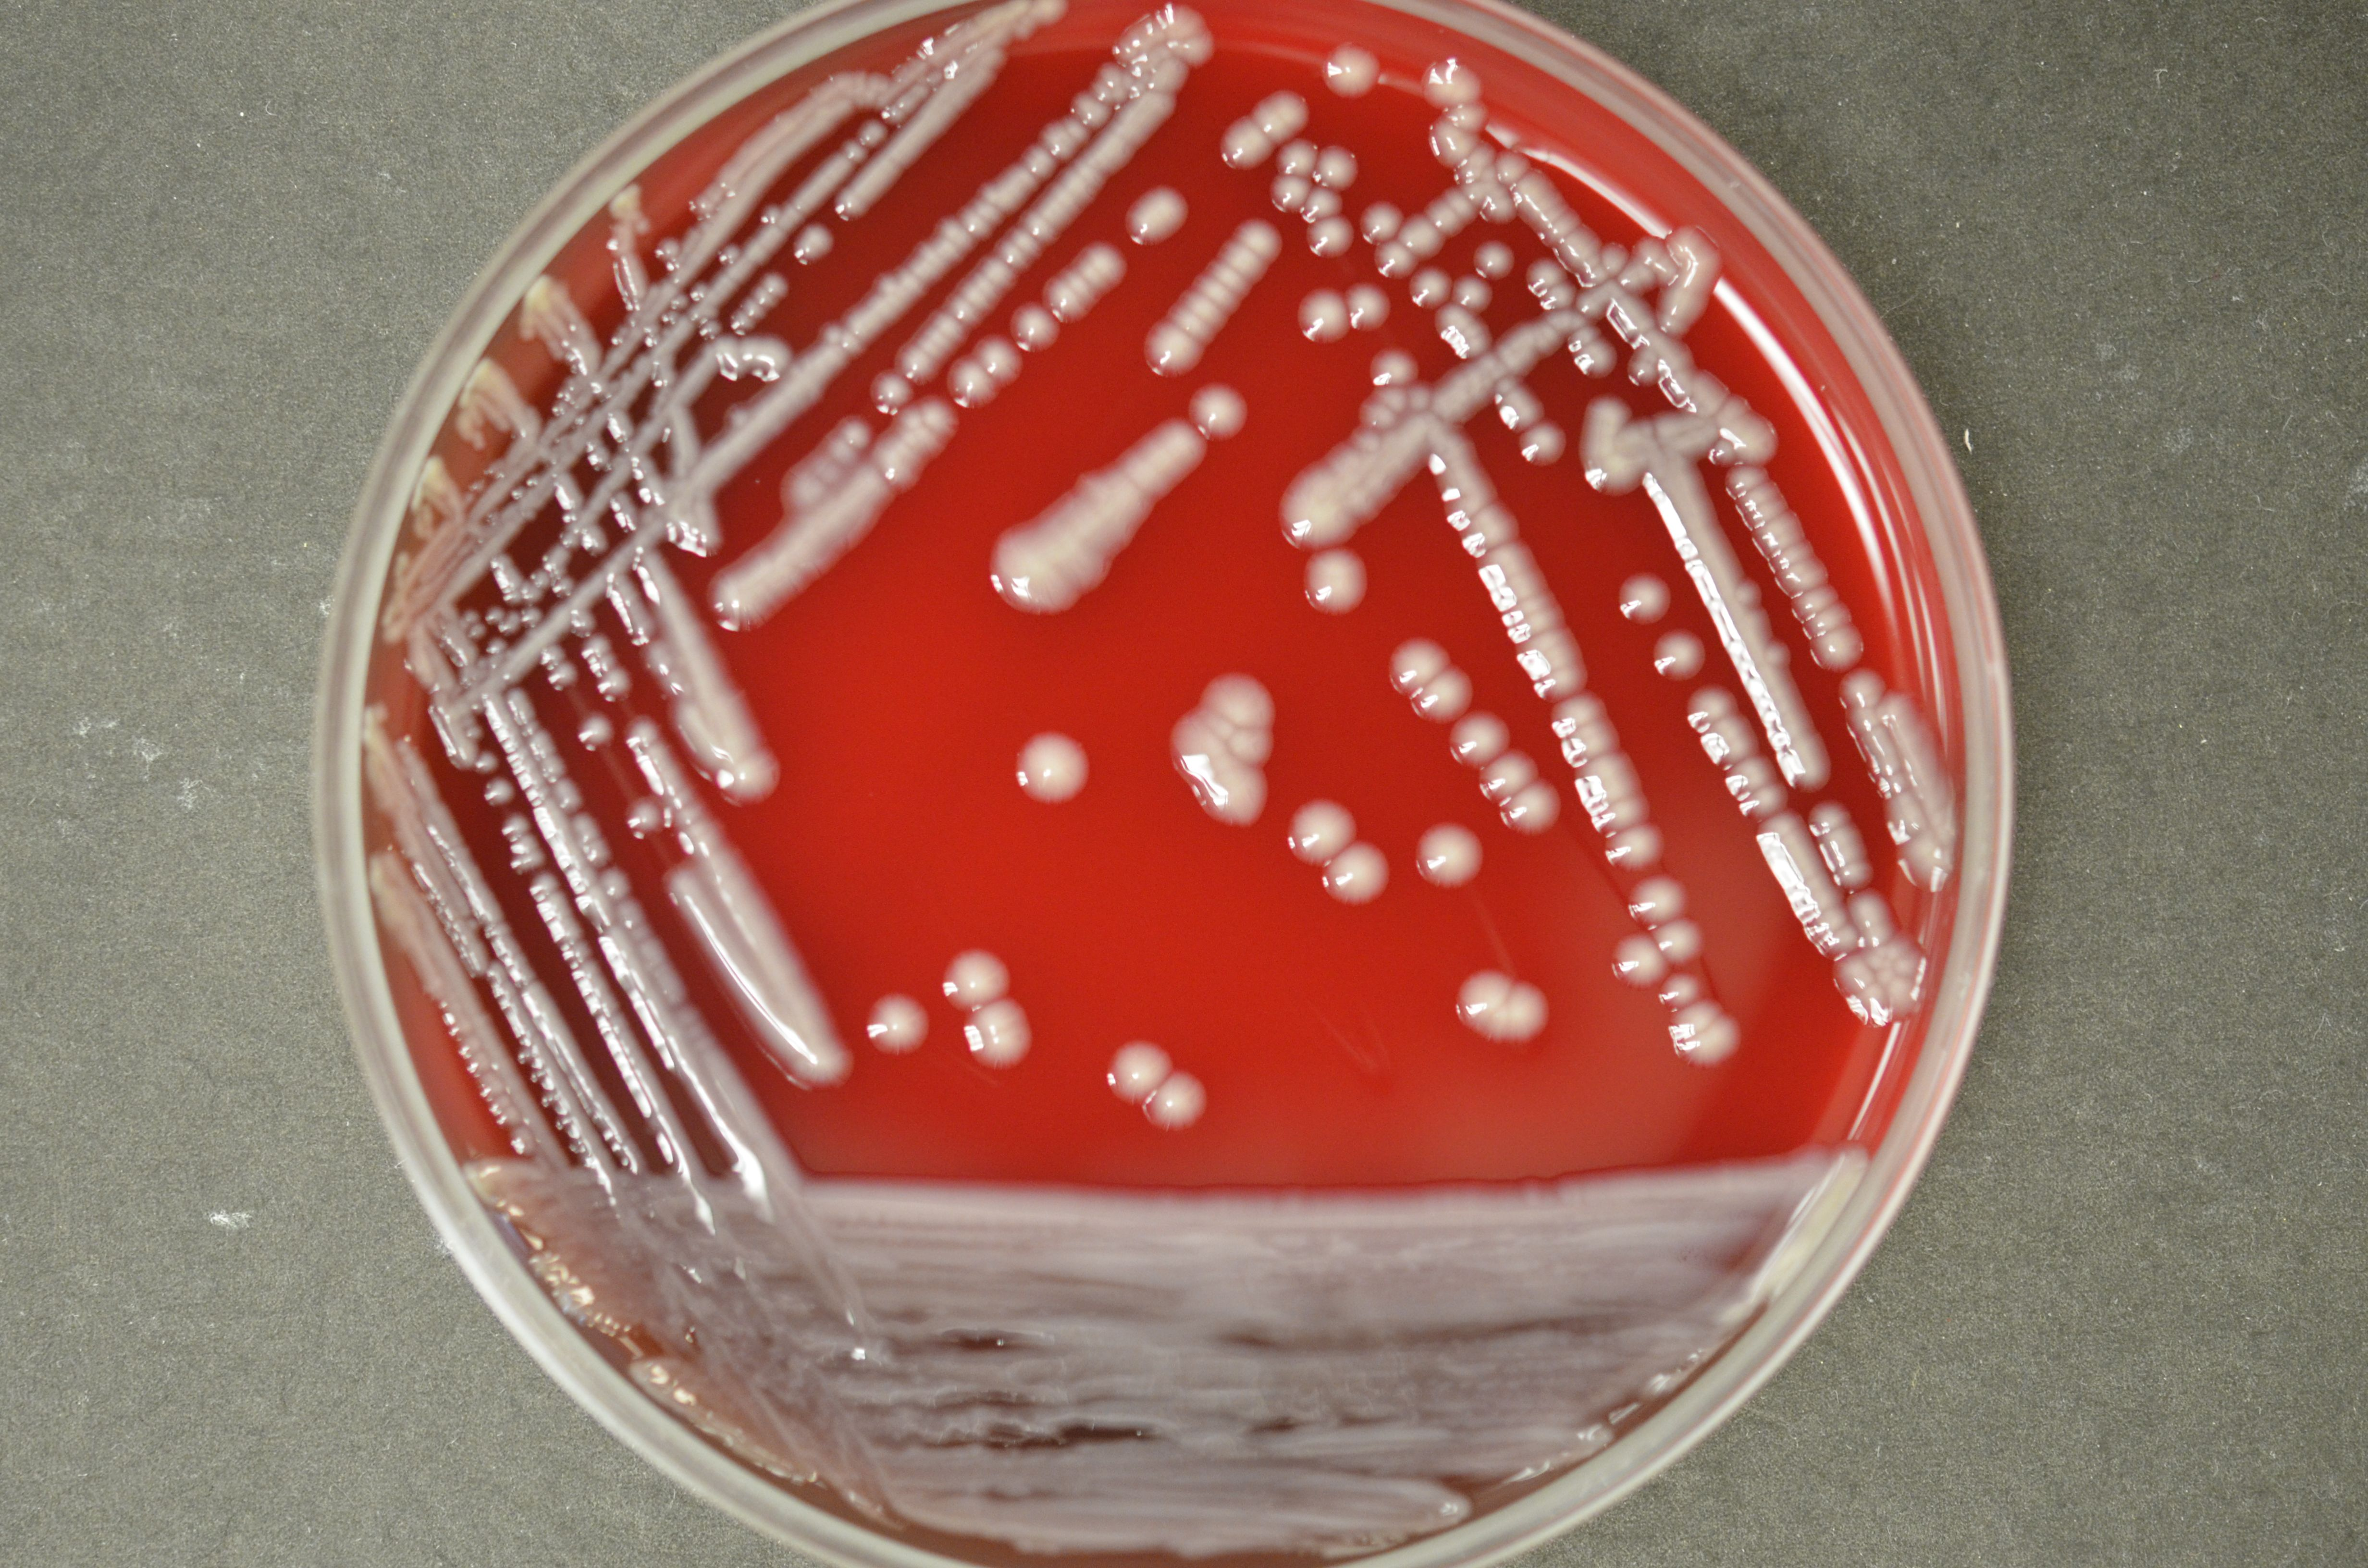 Klebsiella Oxytoca In Stool Culture Klebsiella Sp Germs